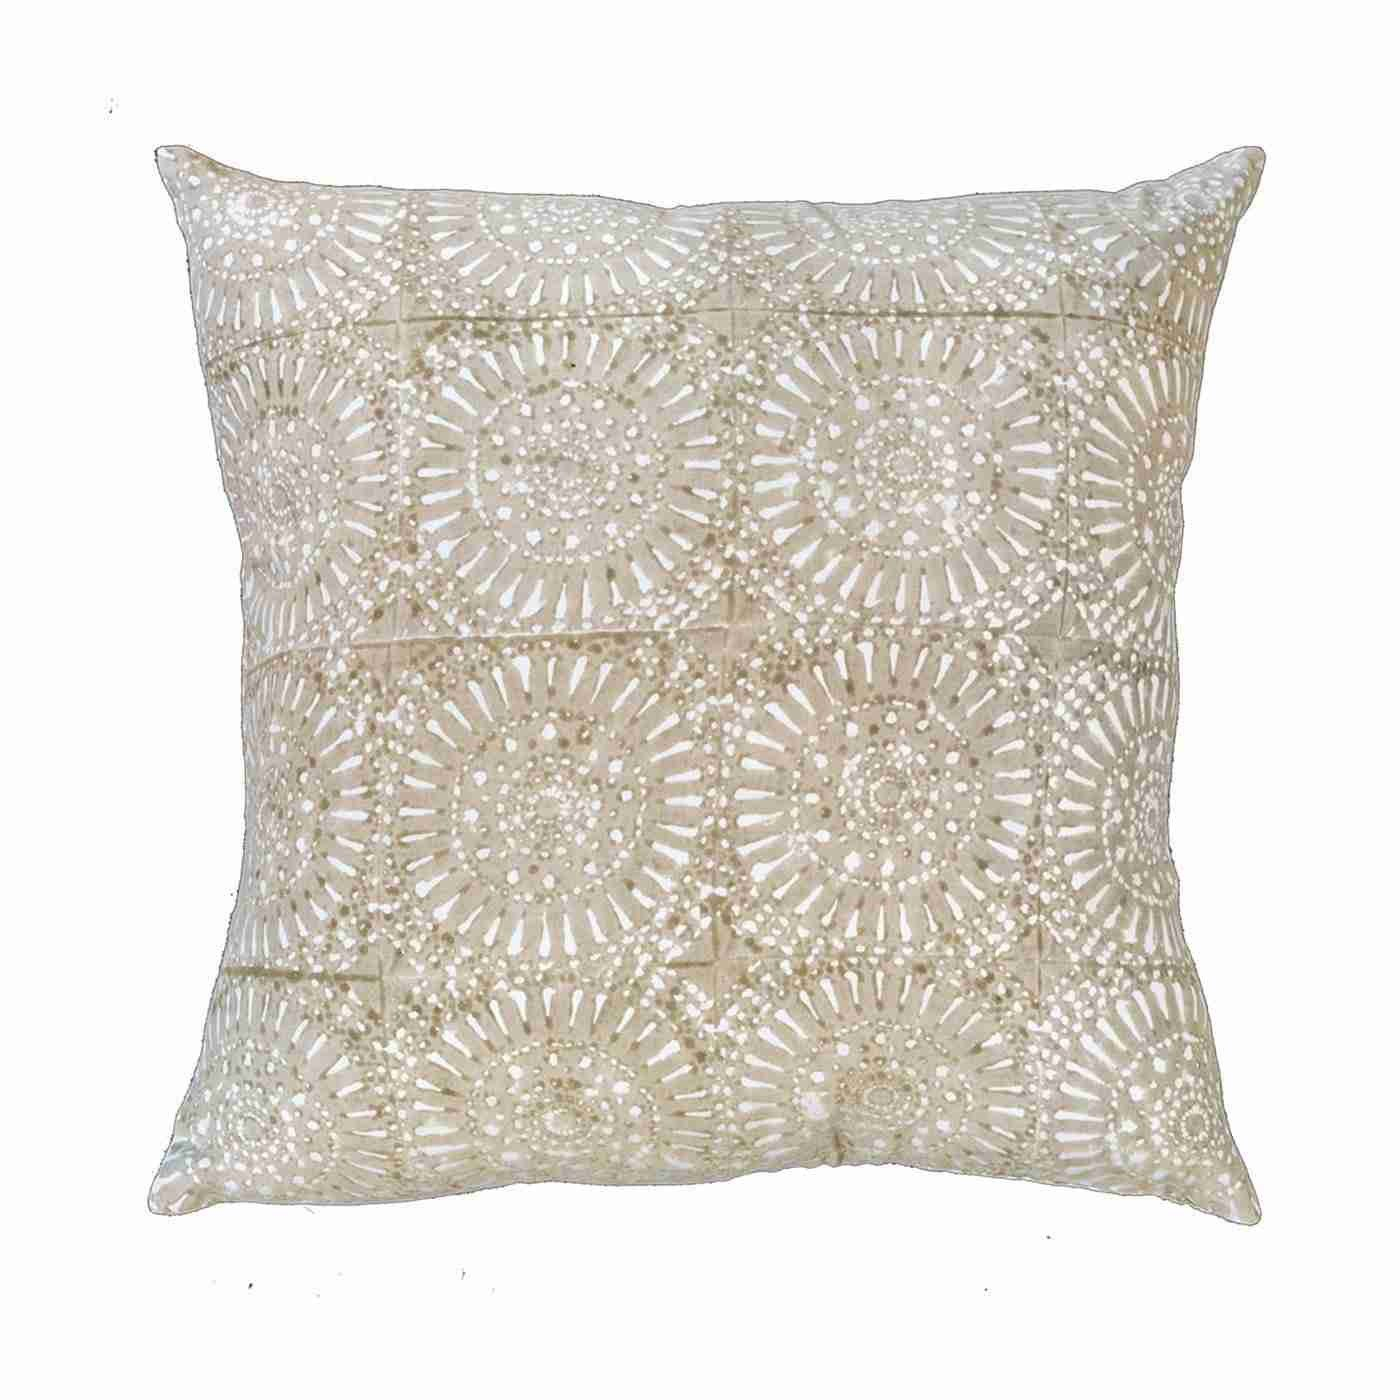 Sphere Print Beige Medium Cushion 50 x 50cm